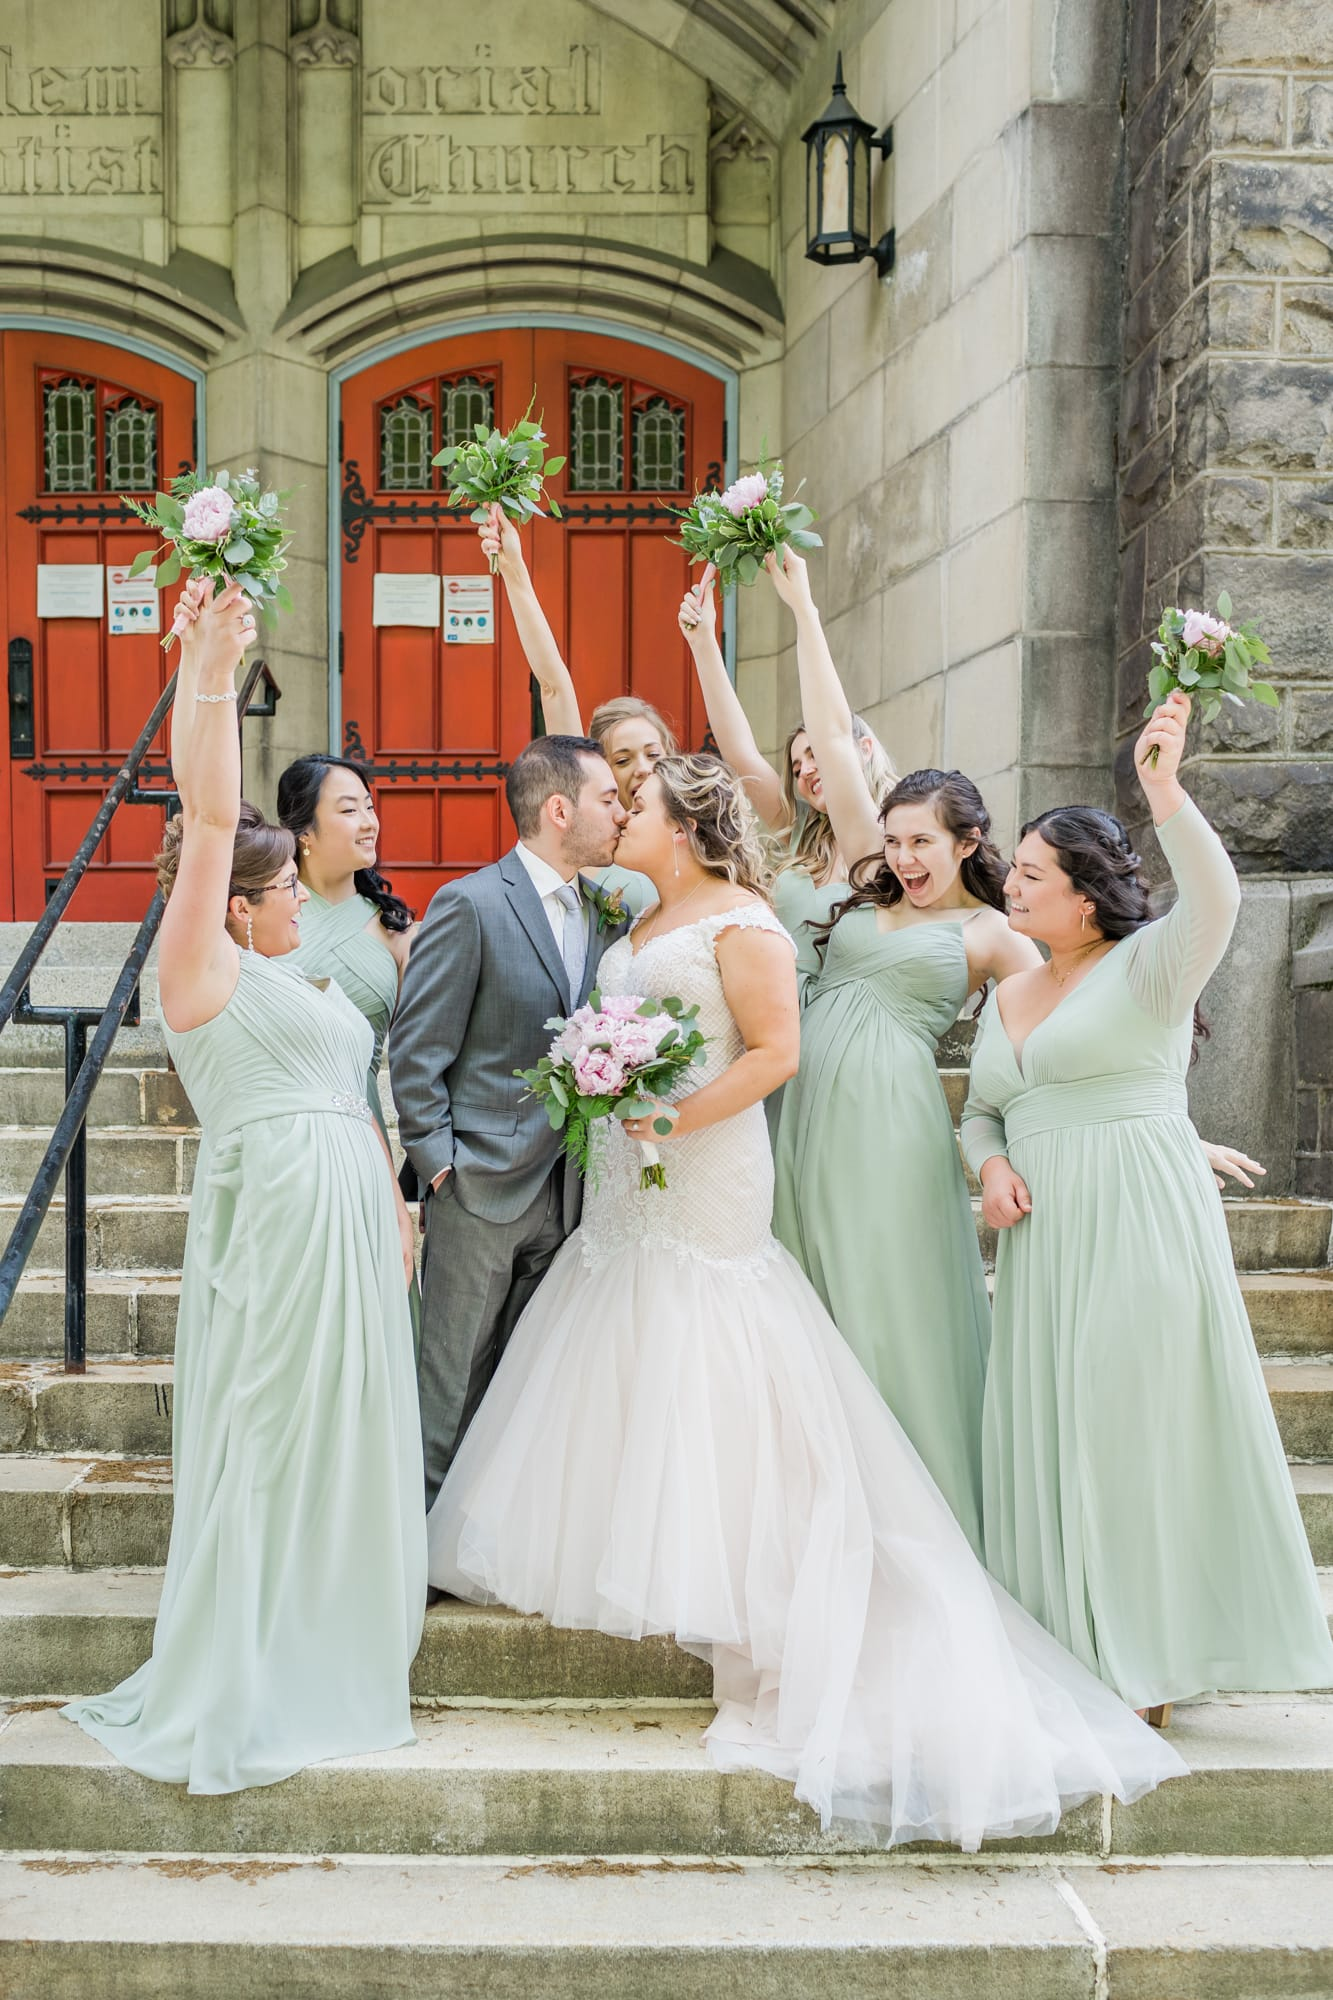 Central Pennsylvania PA summer wedding bridal party cheering on bride and groom